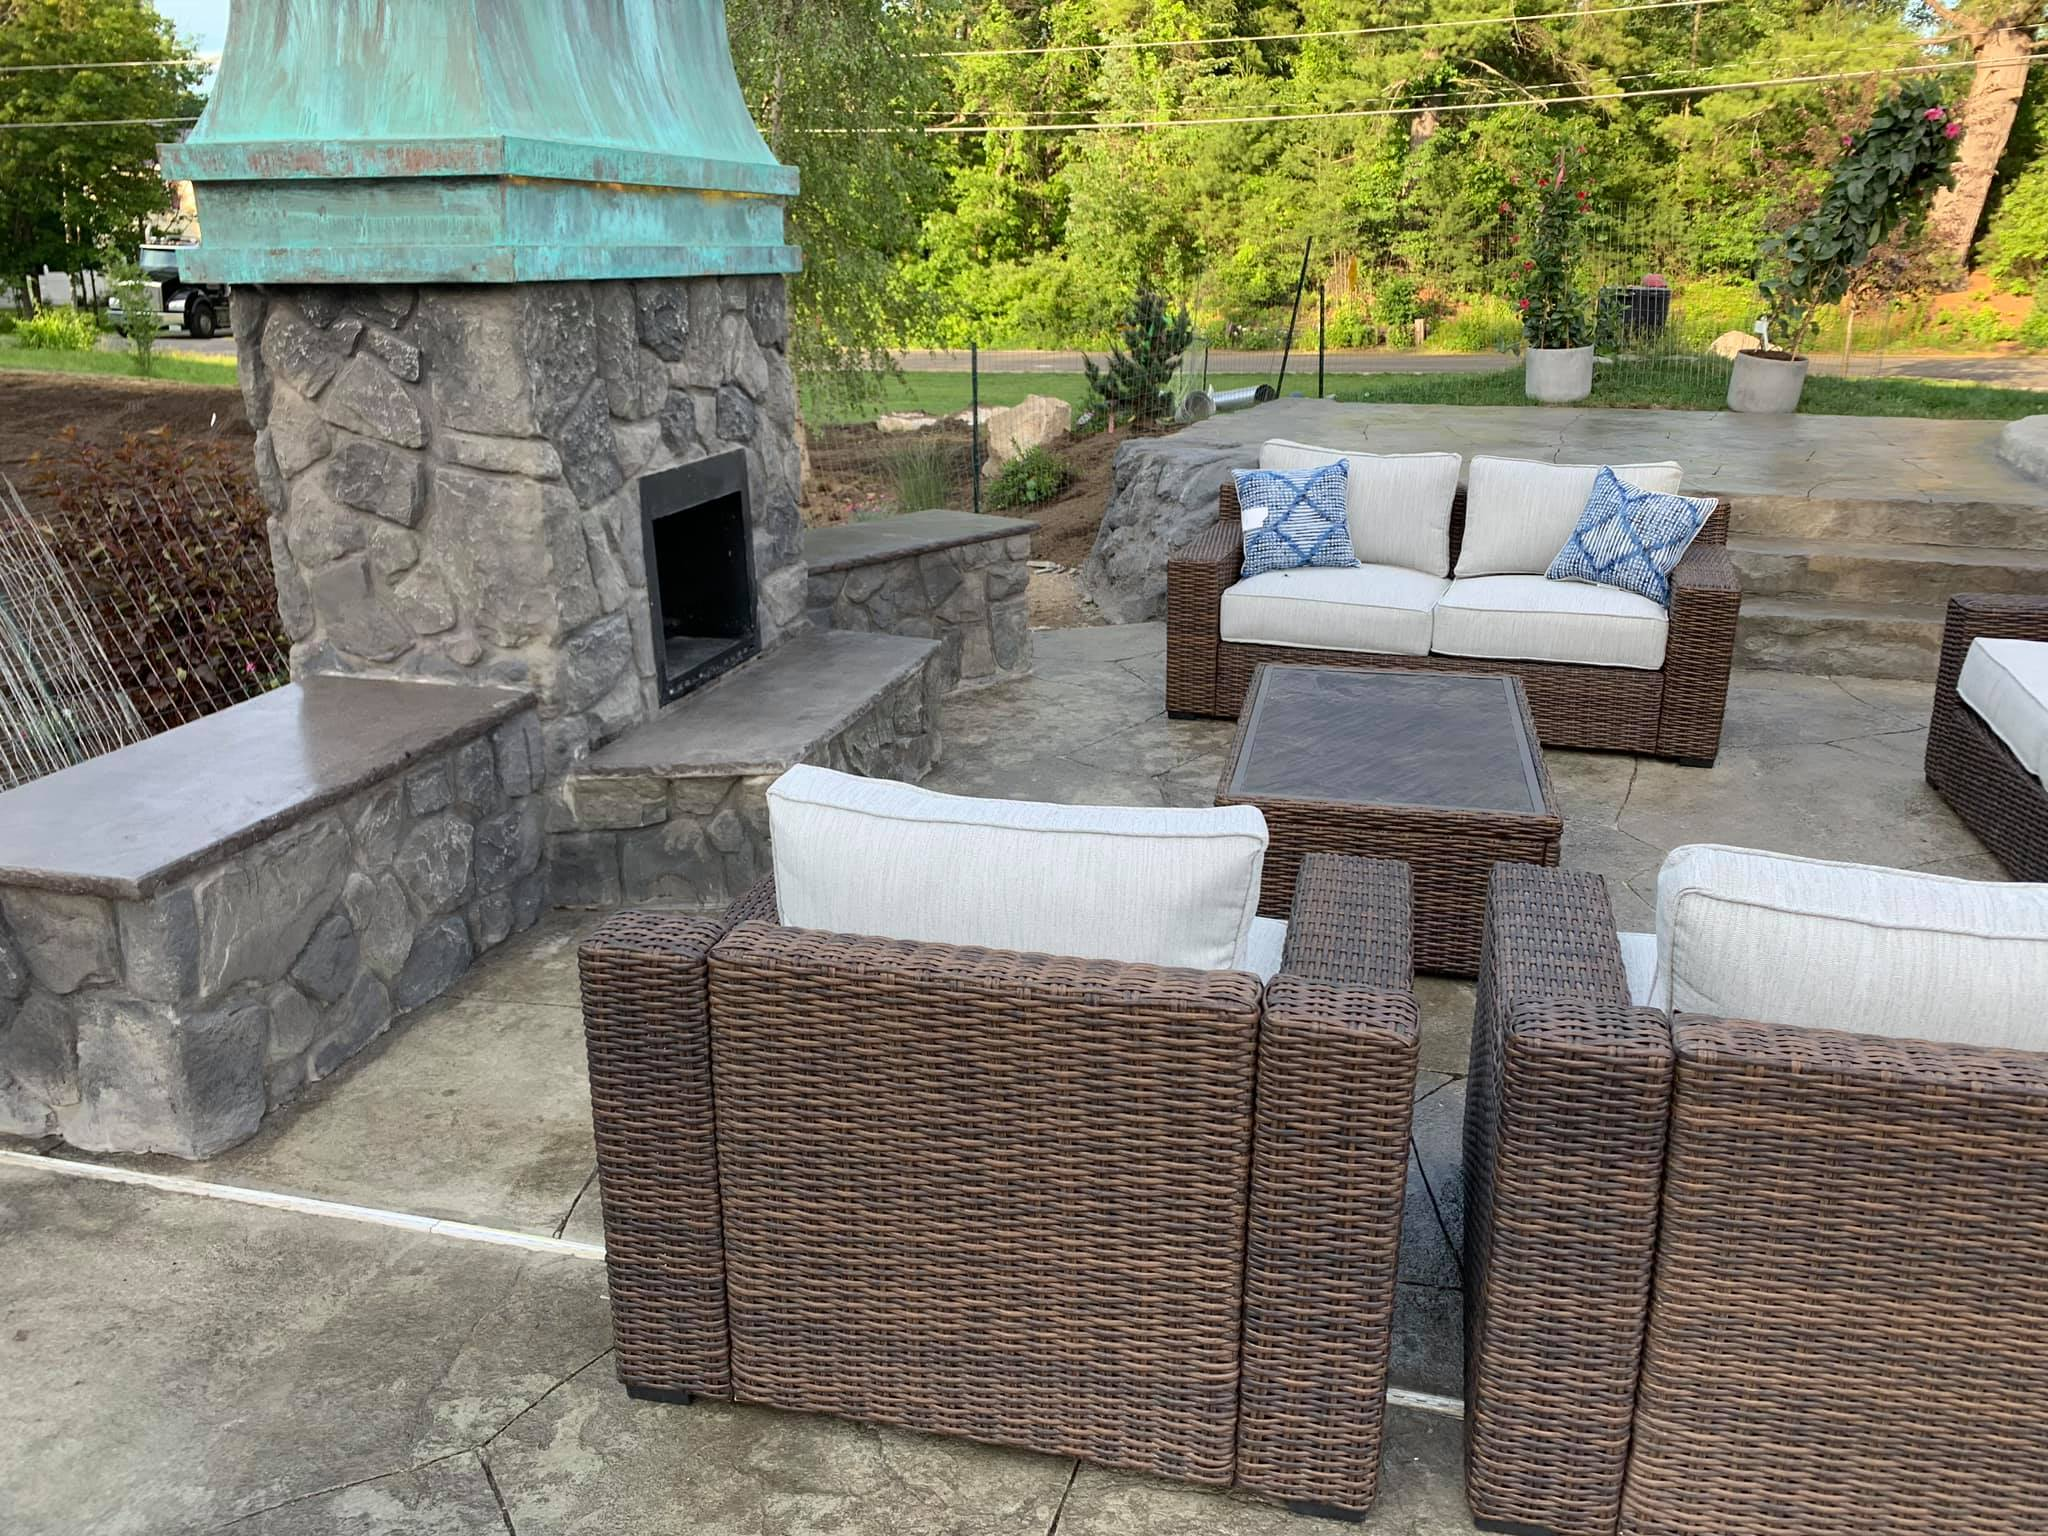 dugybear outdoor living Outdoor fireplace with chairs surrounding